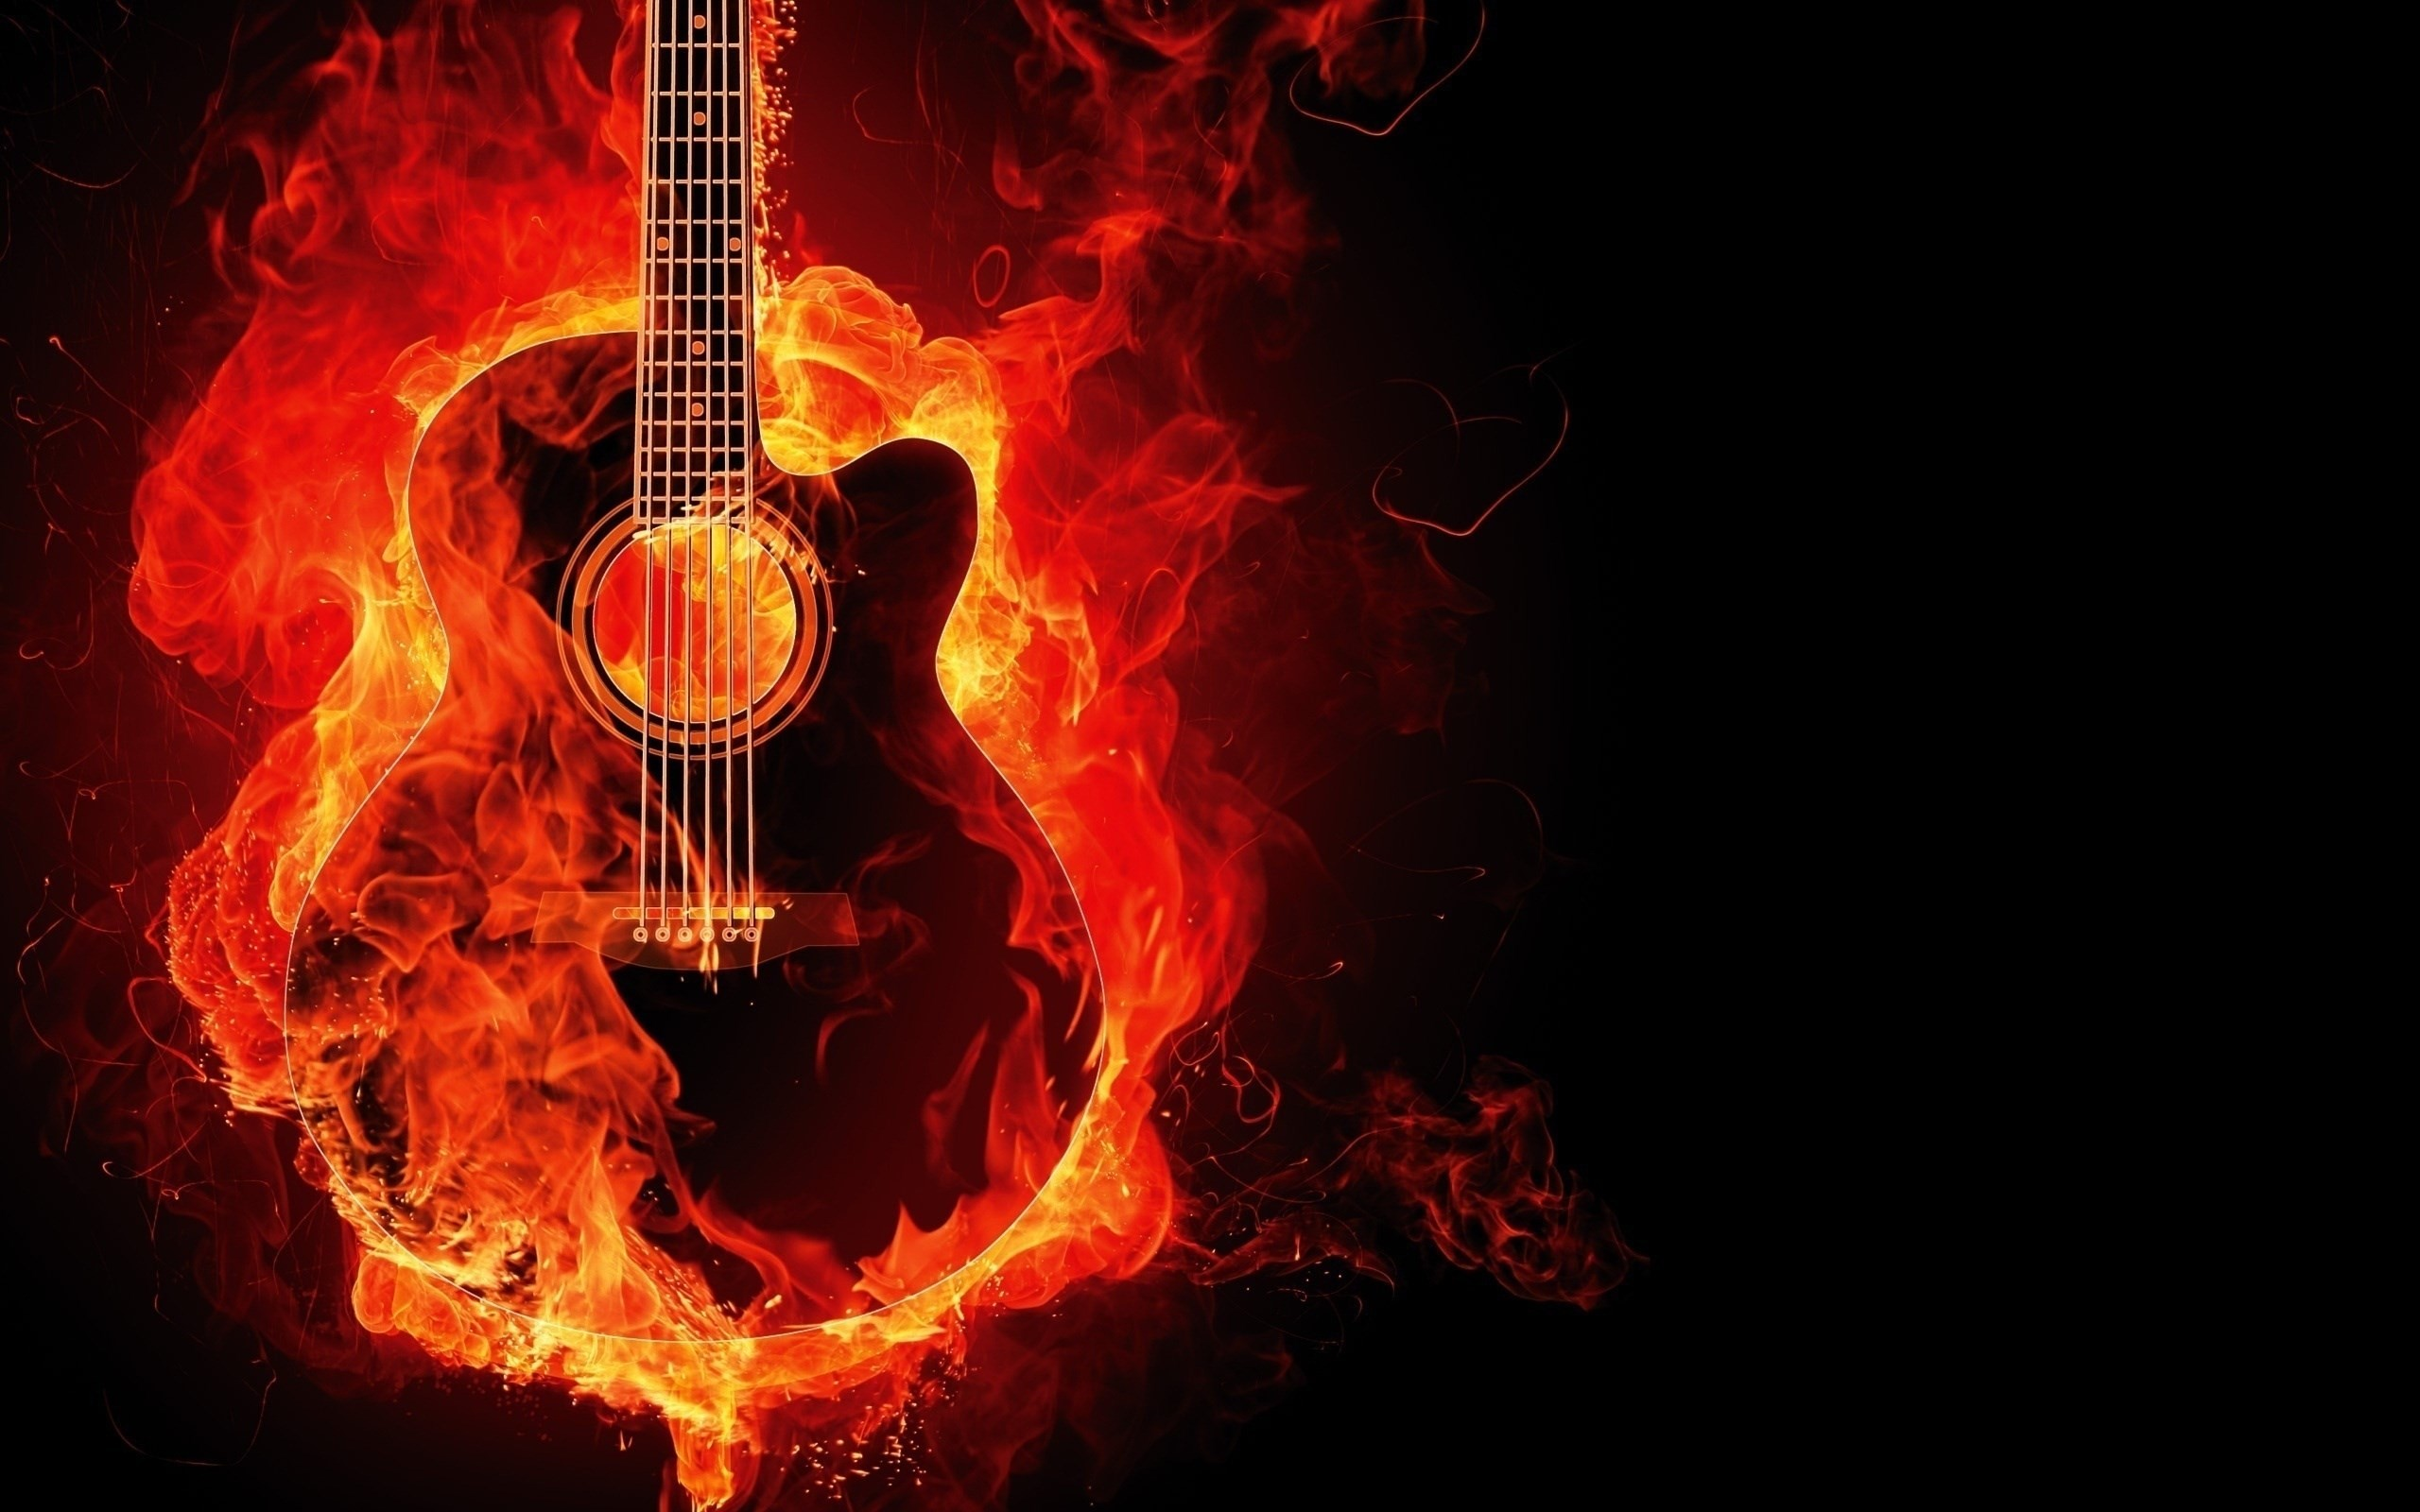 2560x1600 guitar picture free - guitar category